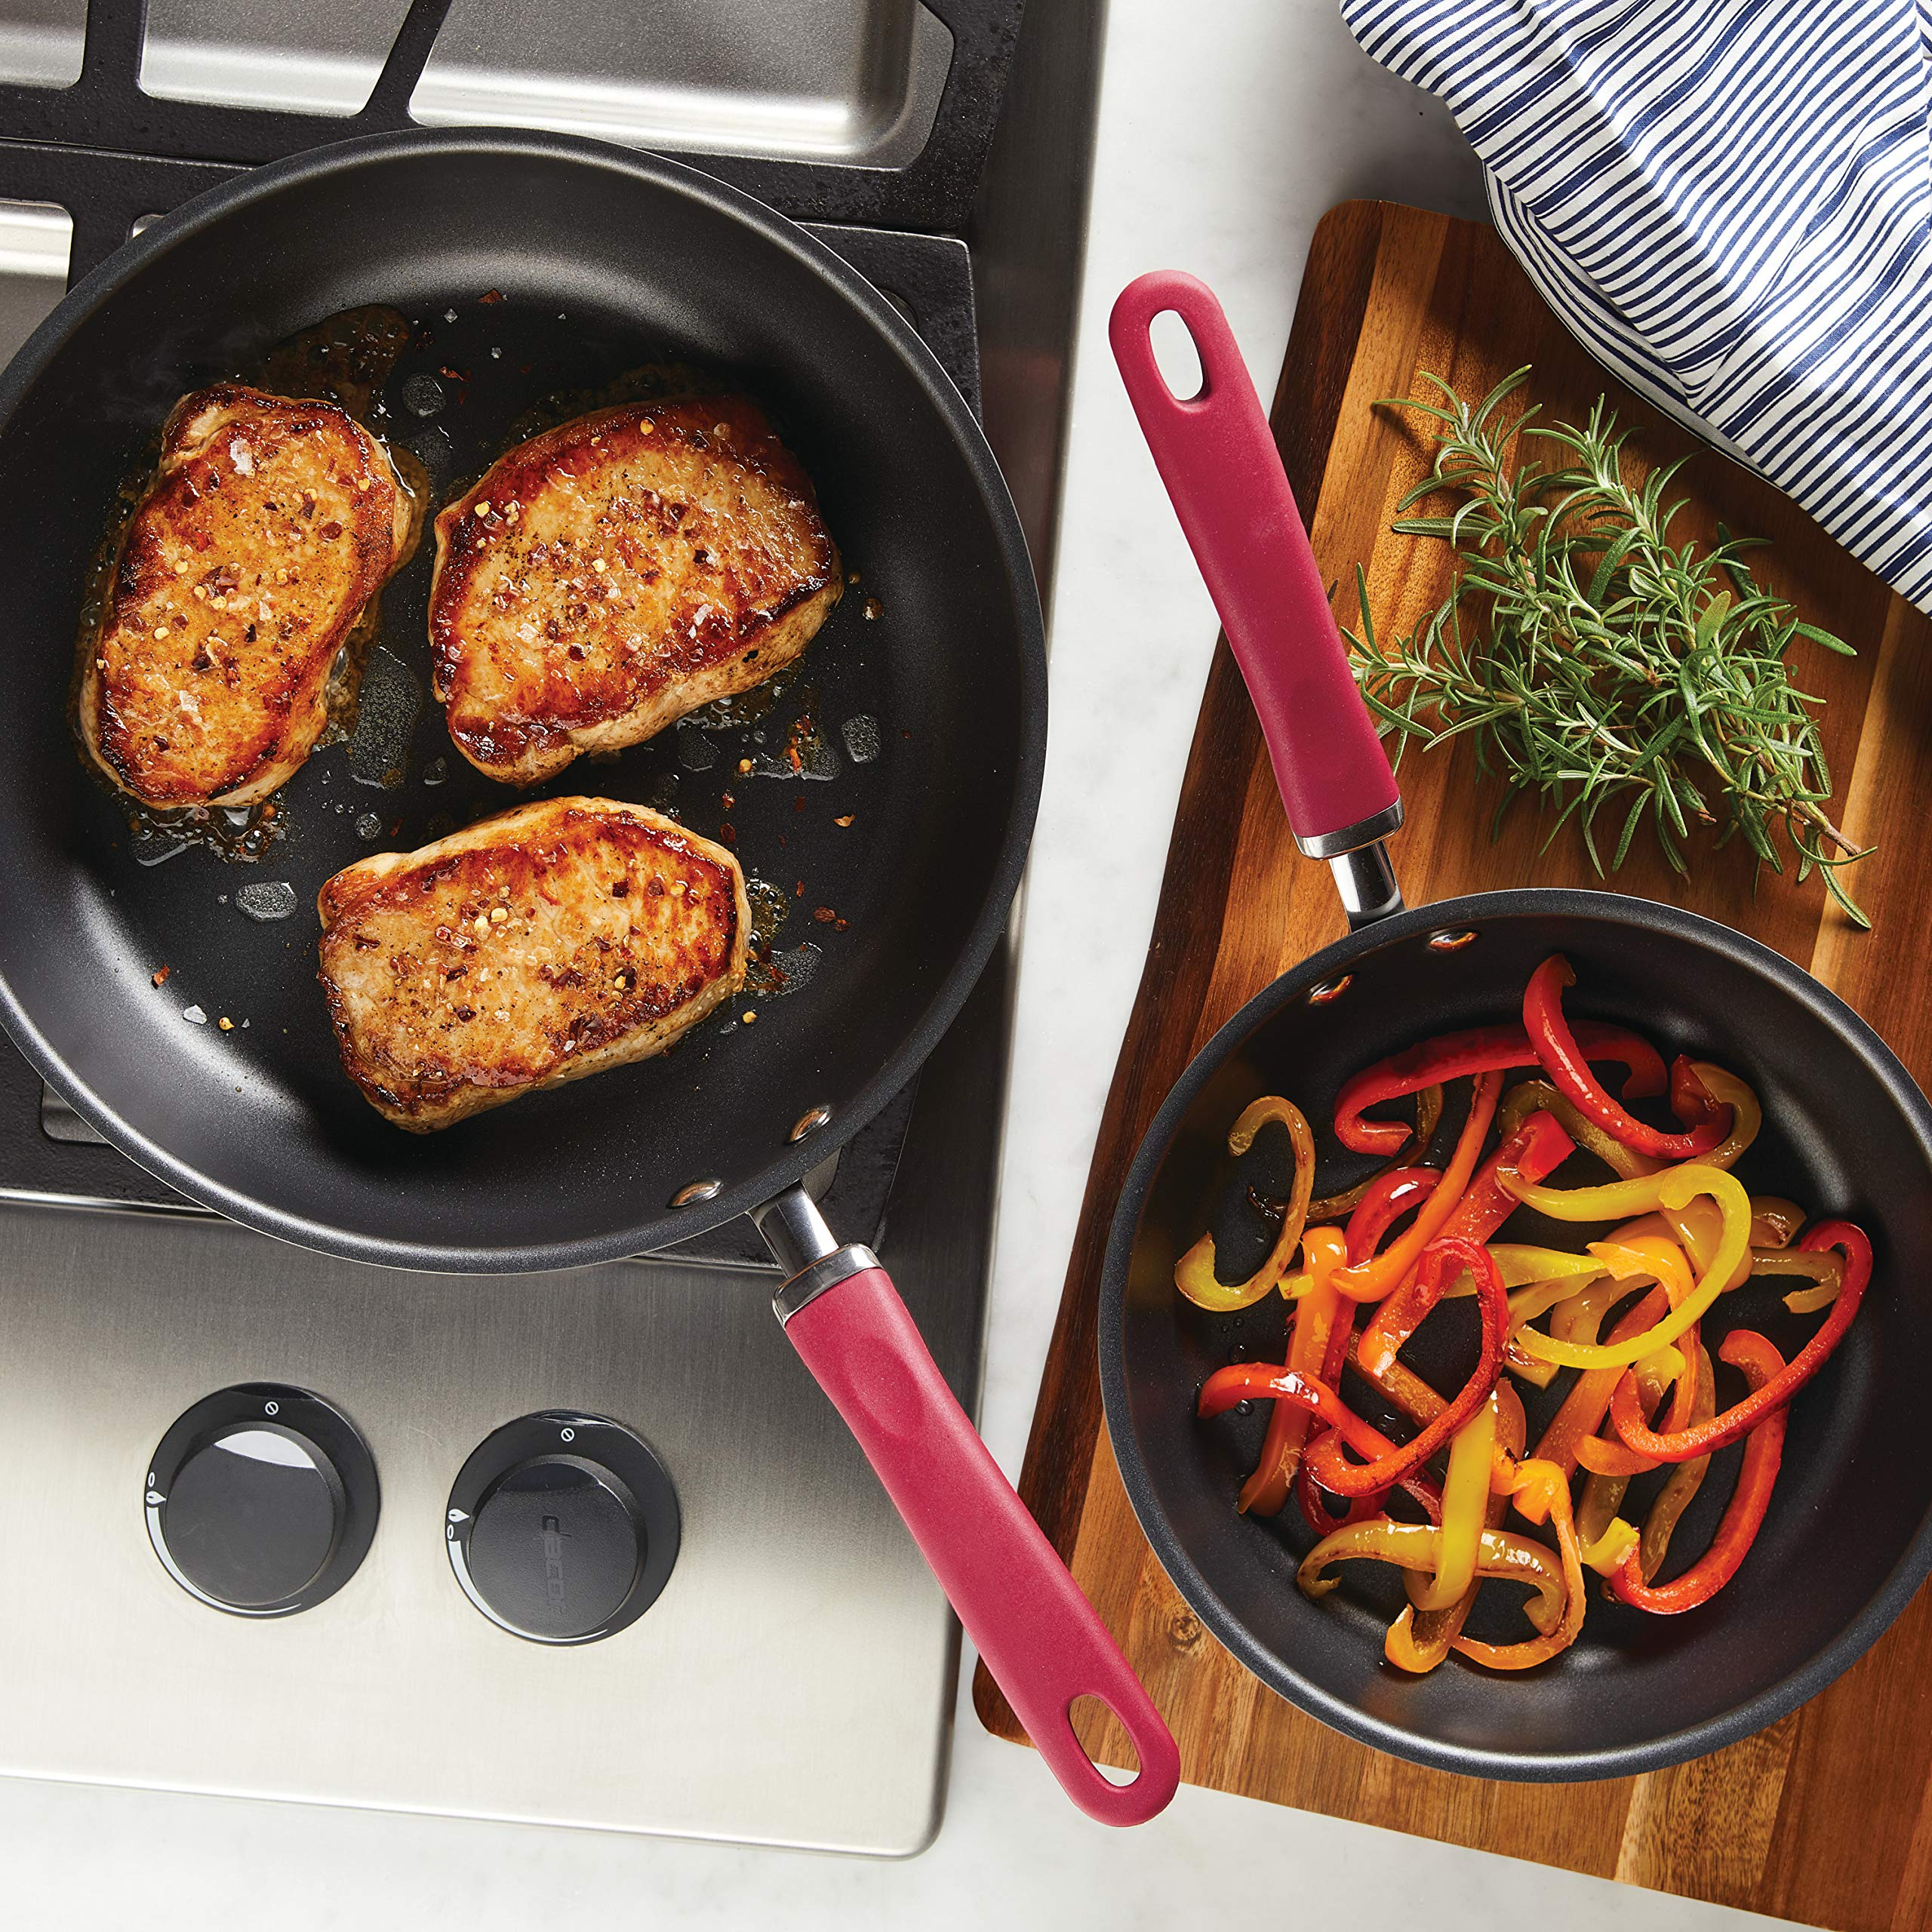 Rachael Ray Create Delicious Hard-Anodized Aluminum Nonstick Deep Skillet Twin Pack, 9.5-Inch and 11.75-Inch, Red Handles by Rachael Ray (Image #2)